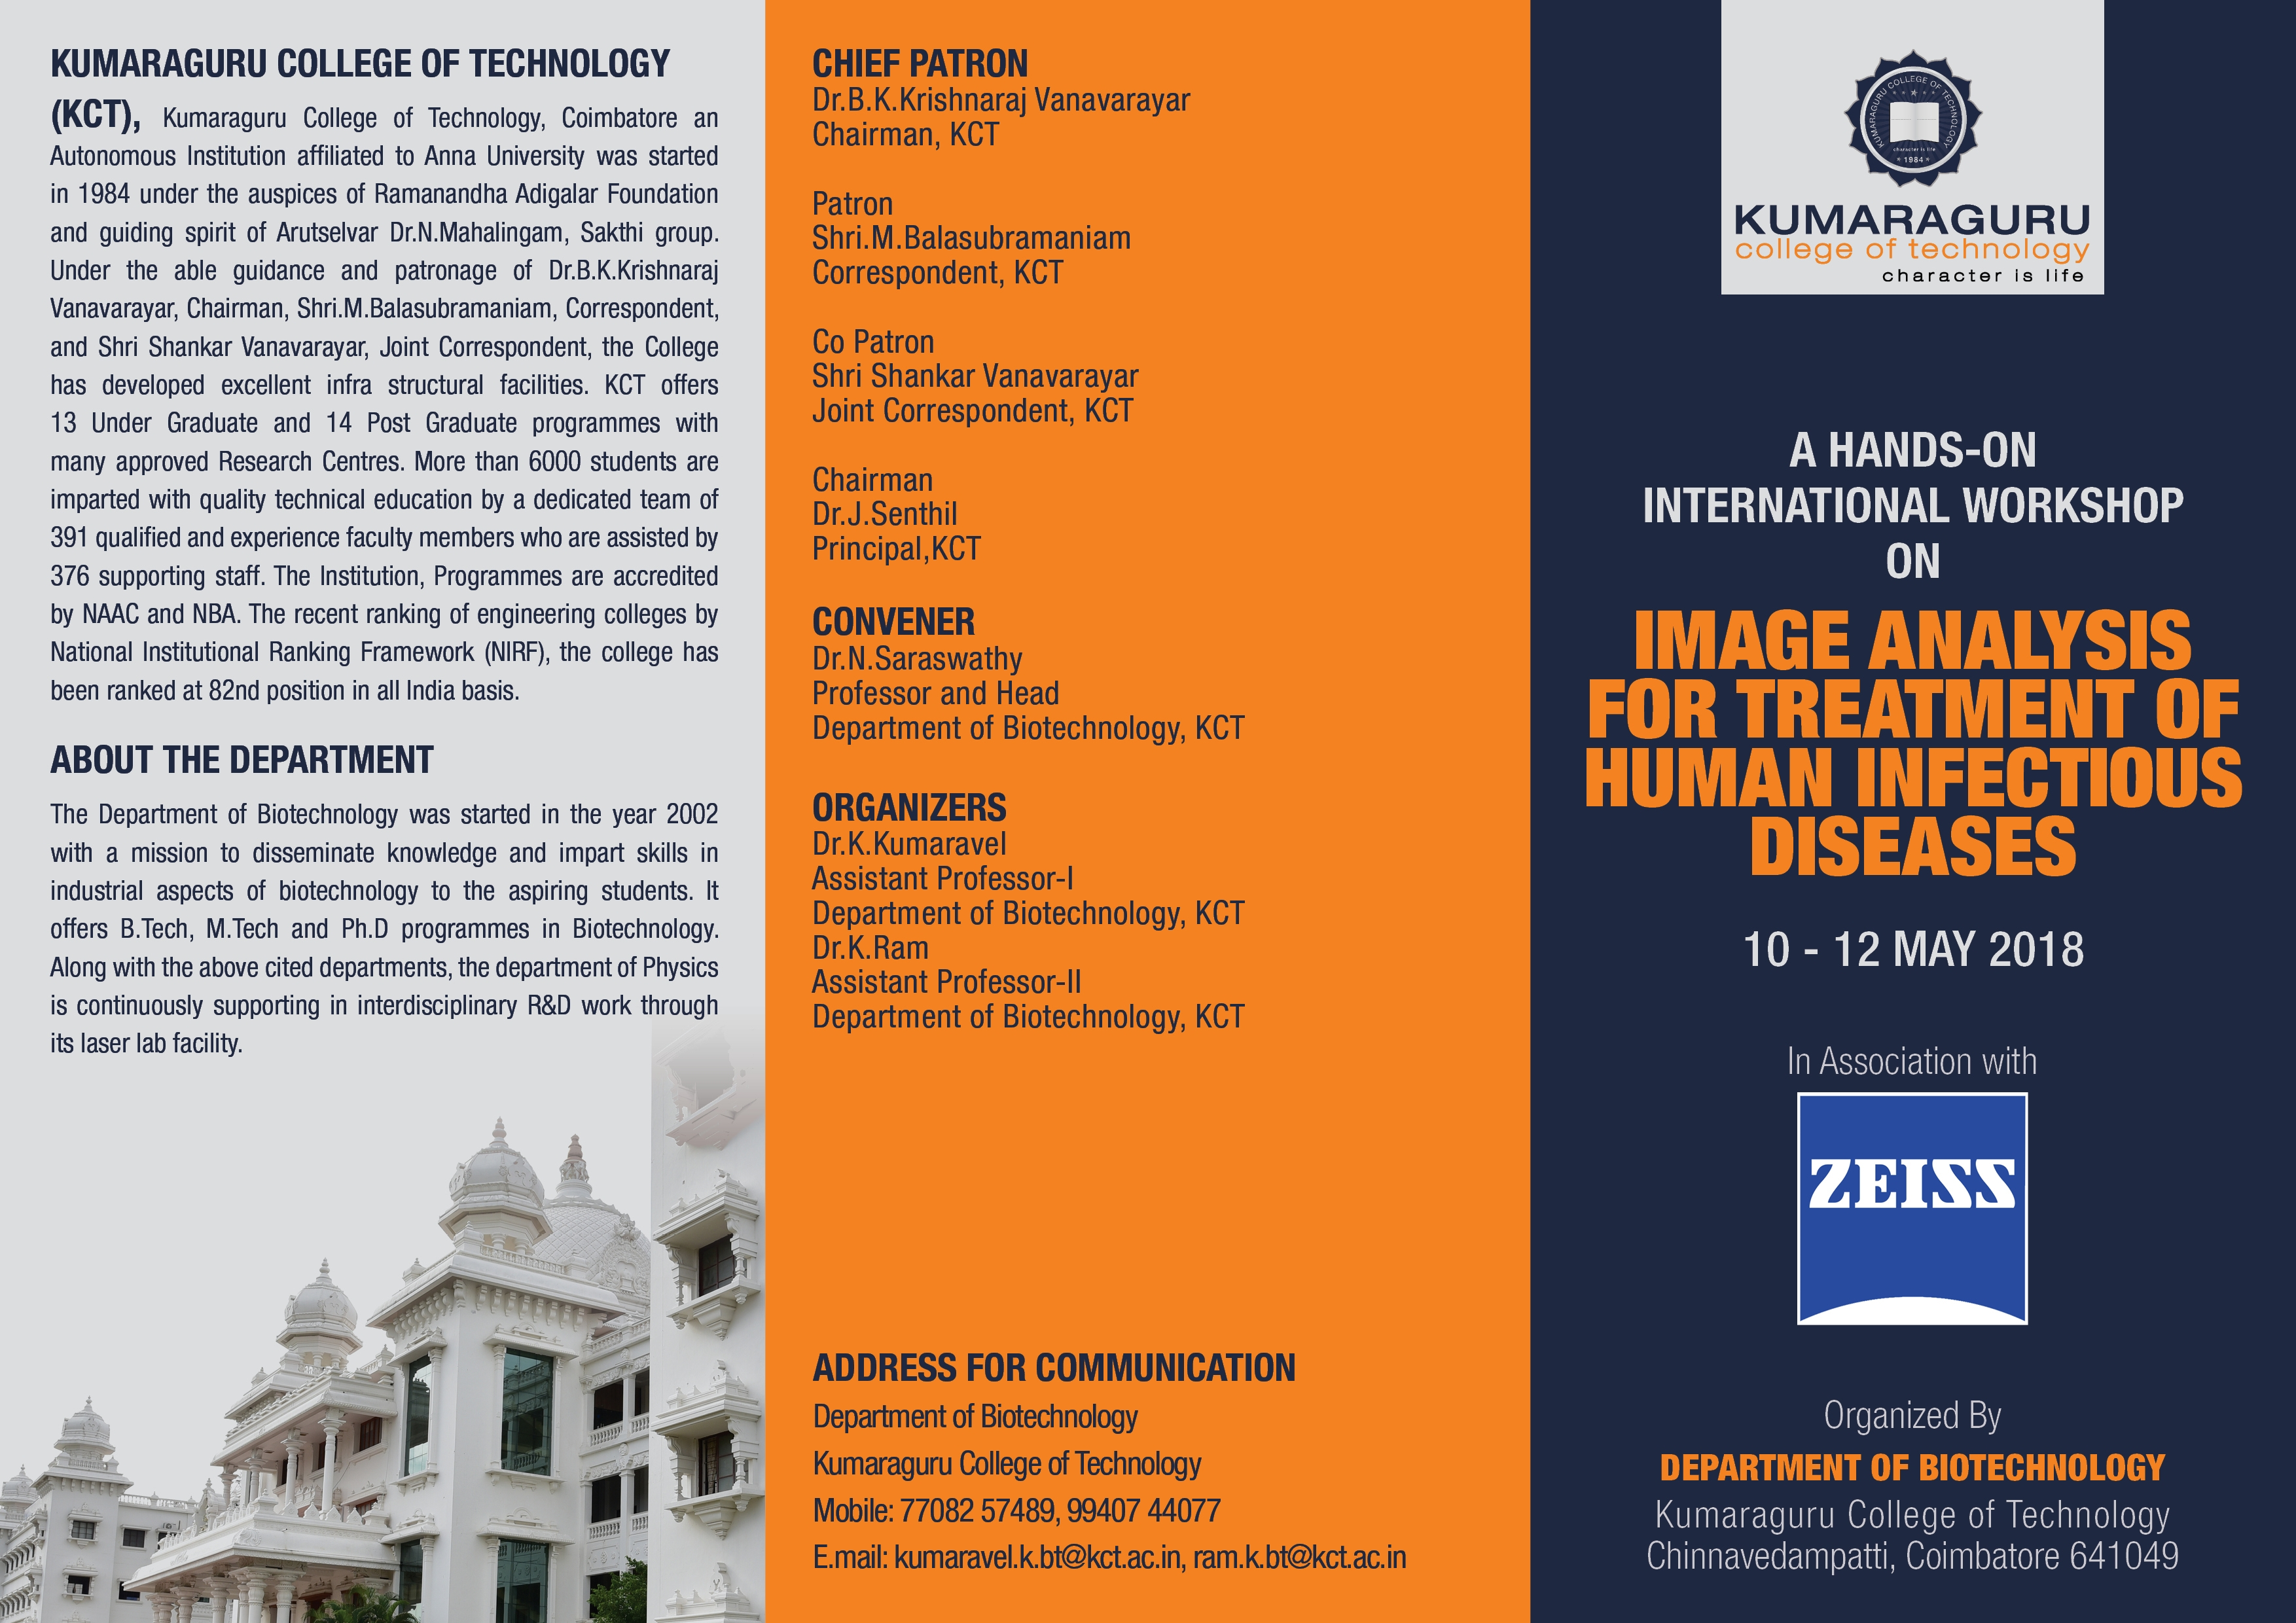 Invitation for participation in Hands on international workshop on Image analysis for Treatment of Human Infectious Diseases,, 10th to 12th May 2018